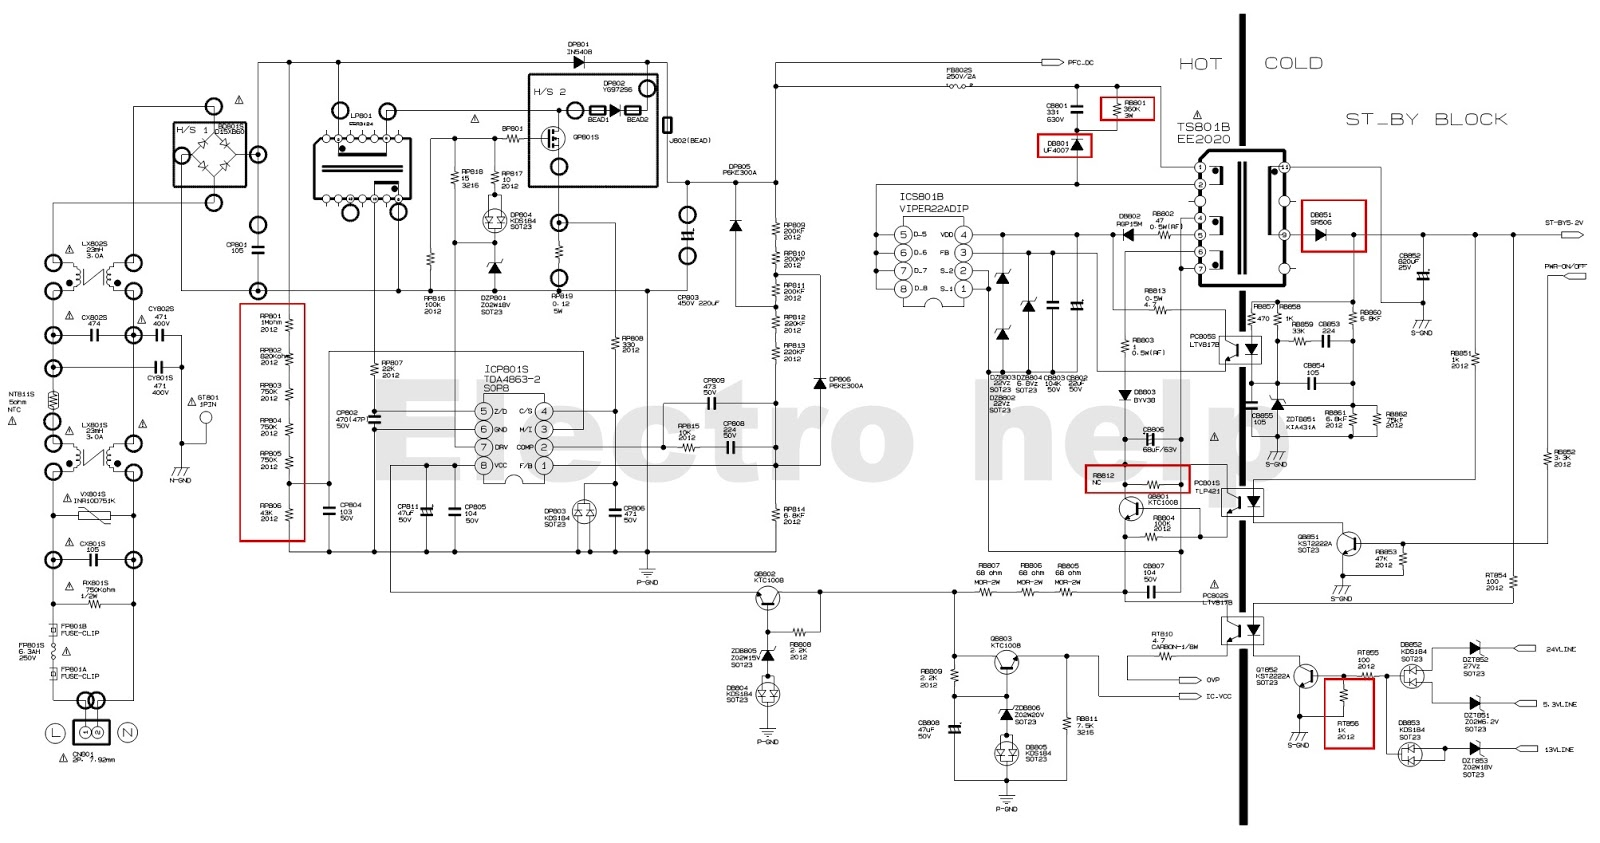 Hisense Tlm 1510eu 15 Tft Lcd Monitor moreover Bn4400157a Samsung Led Lcd Tv Smps likewise Proview furthermore Panasonic Kx Ft78br G Power Supply furthermore PROFIBUS DP Slave  work Interface Module For Quantum. on troubleshooting diagrams